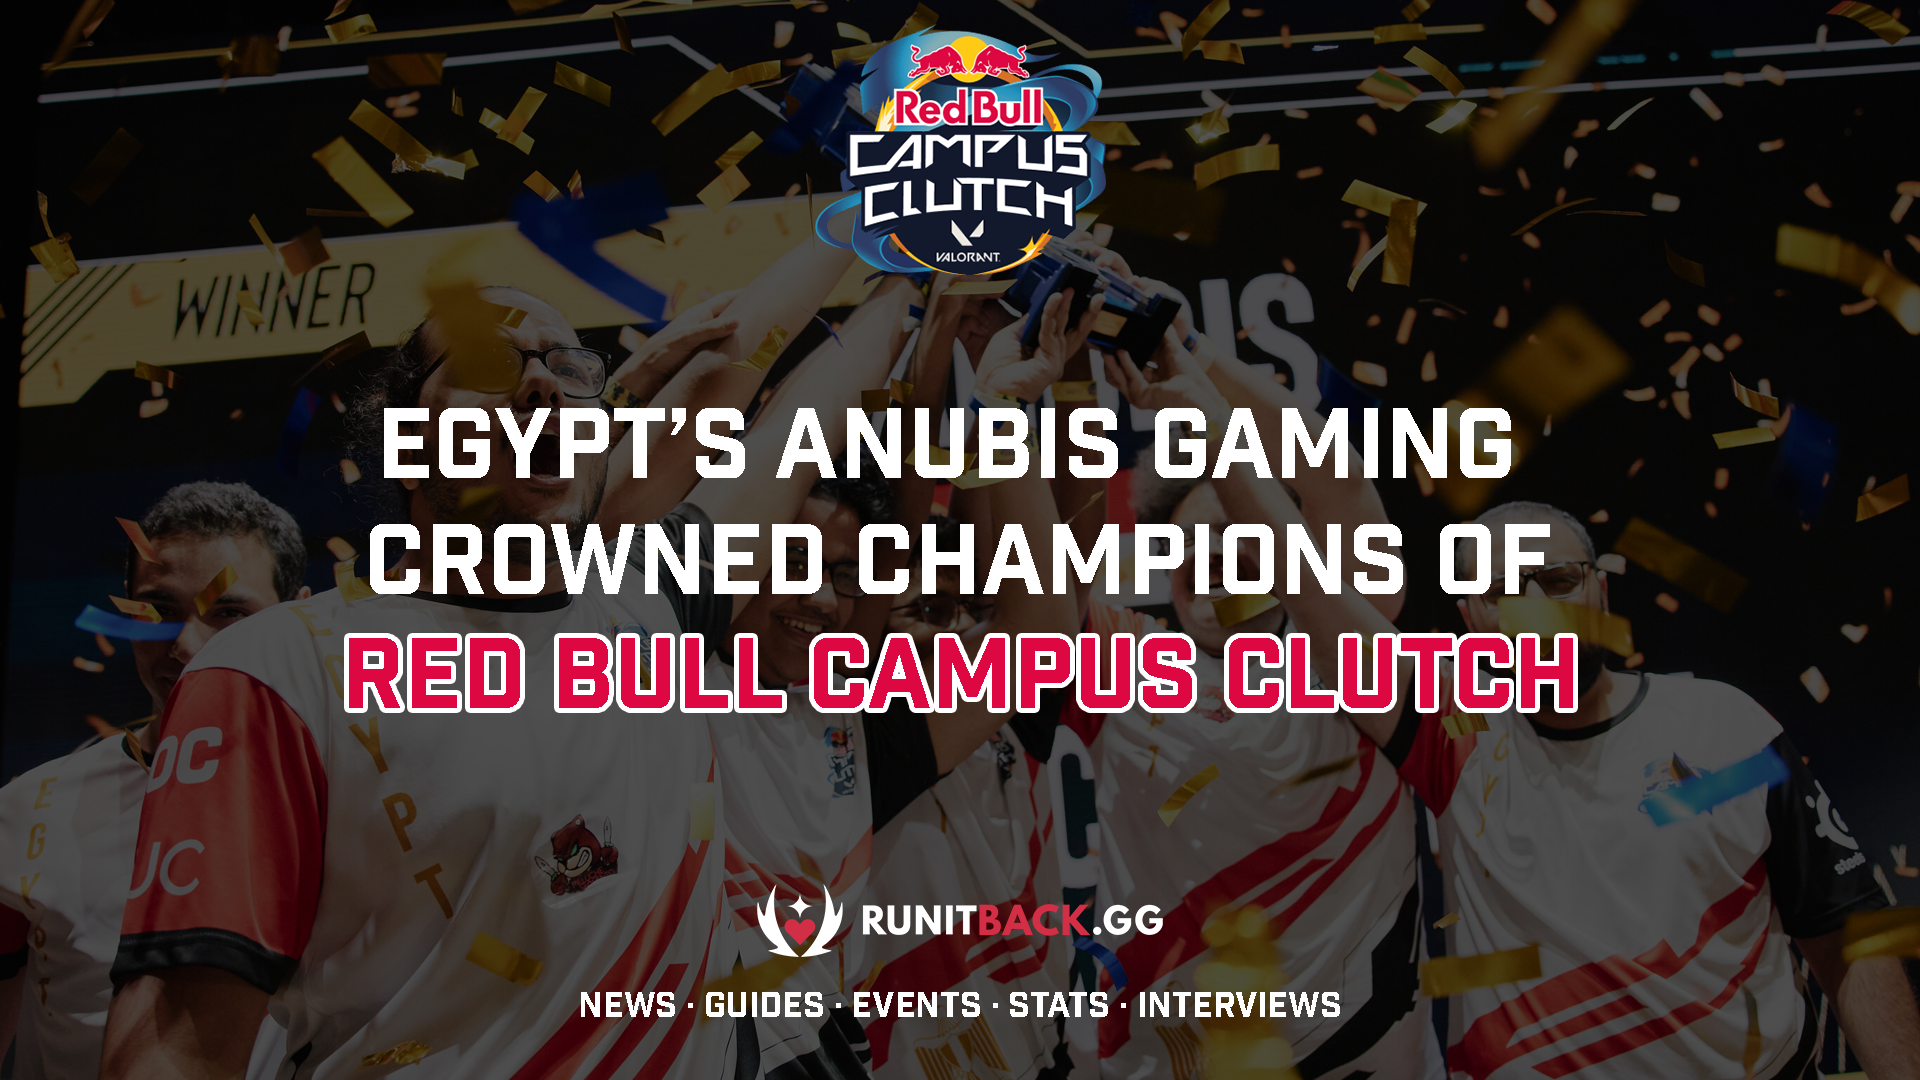 Egypt's Anubis Gaming crowned champions of Red Bull Campus Clutch